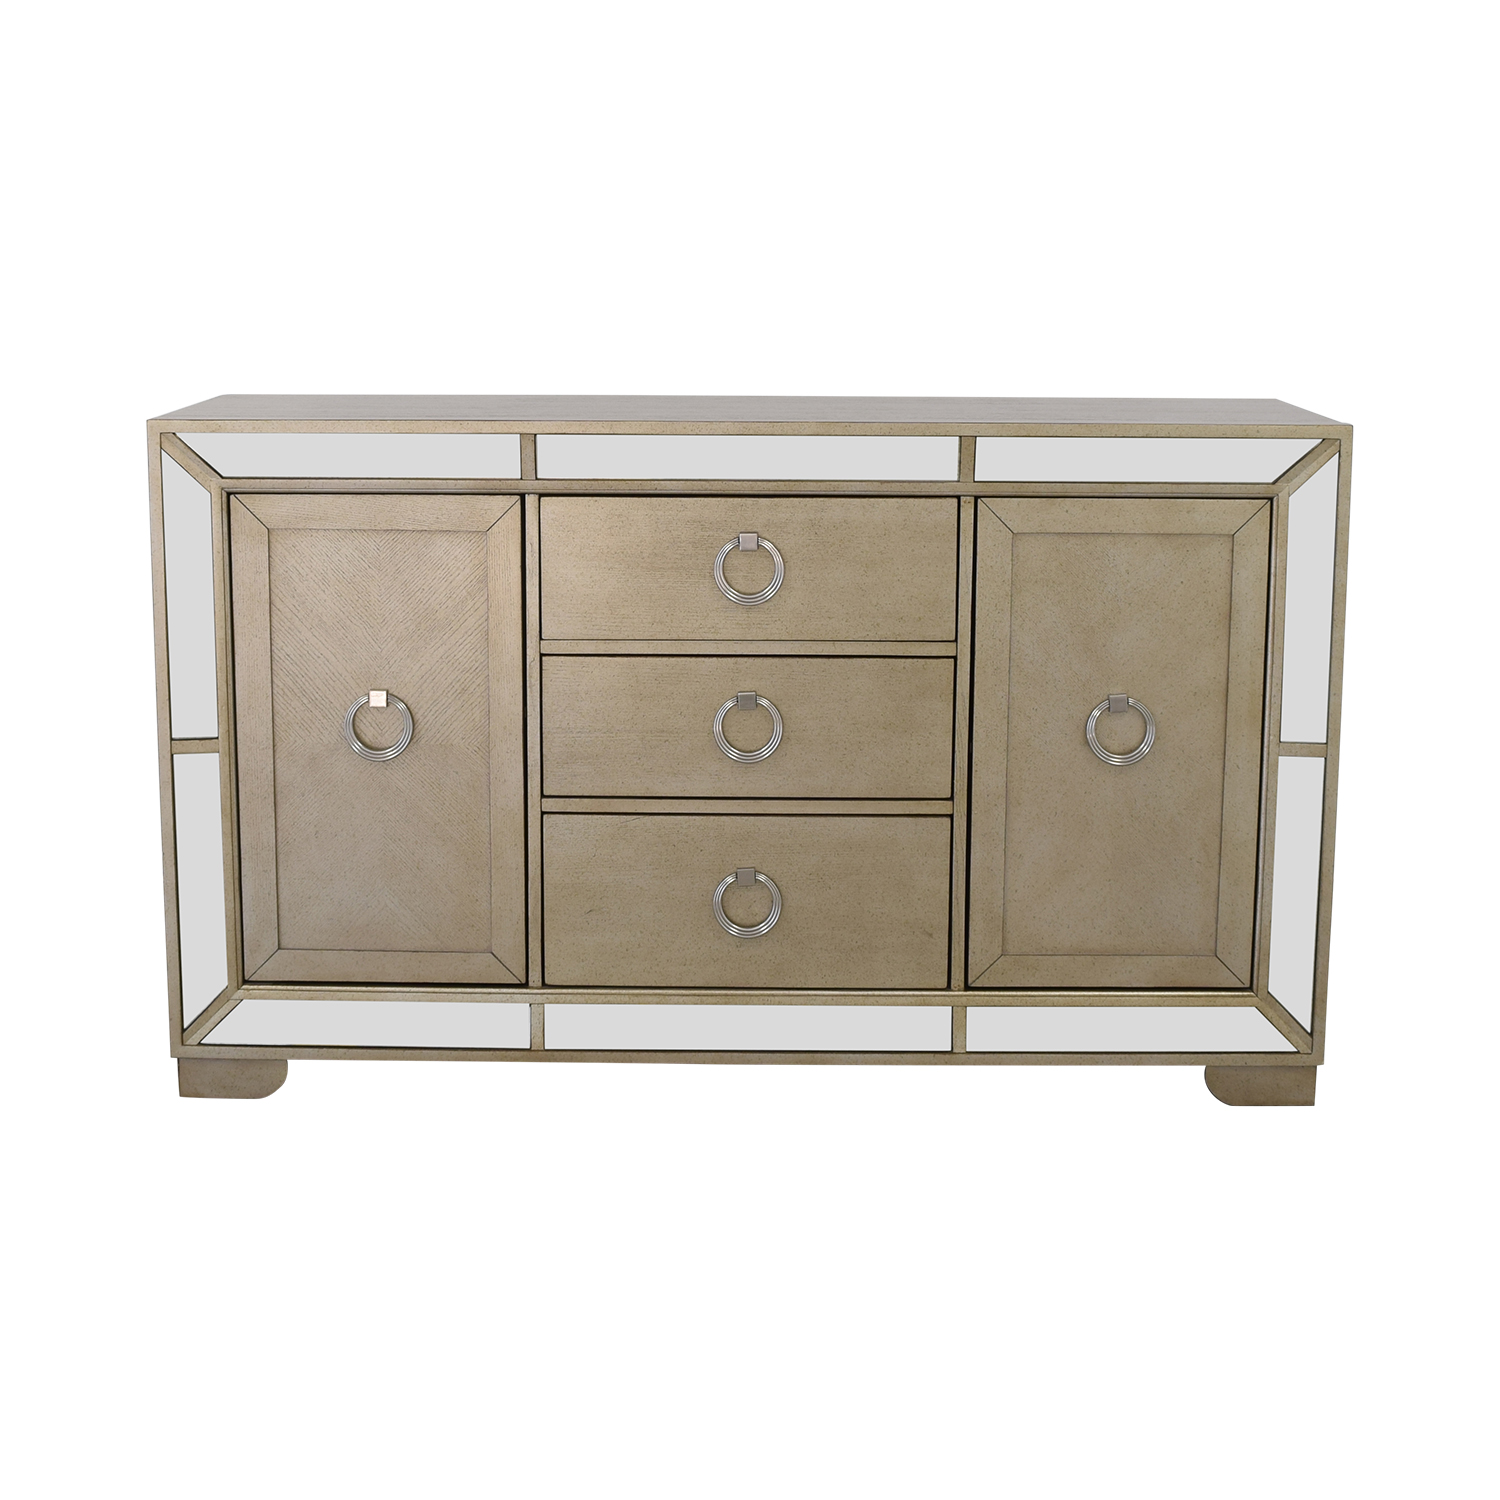 Macy's Ailey Sideboard / Storage